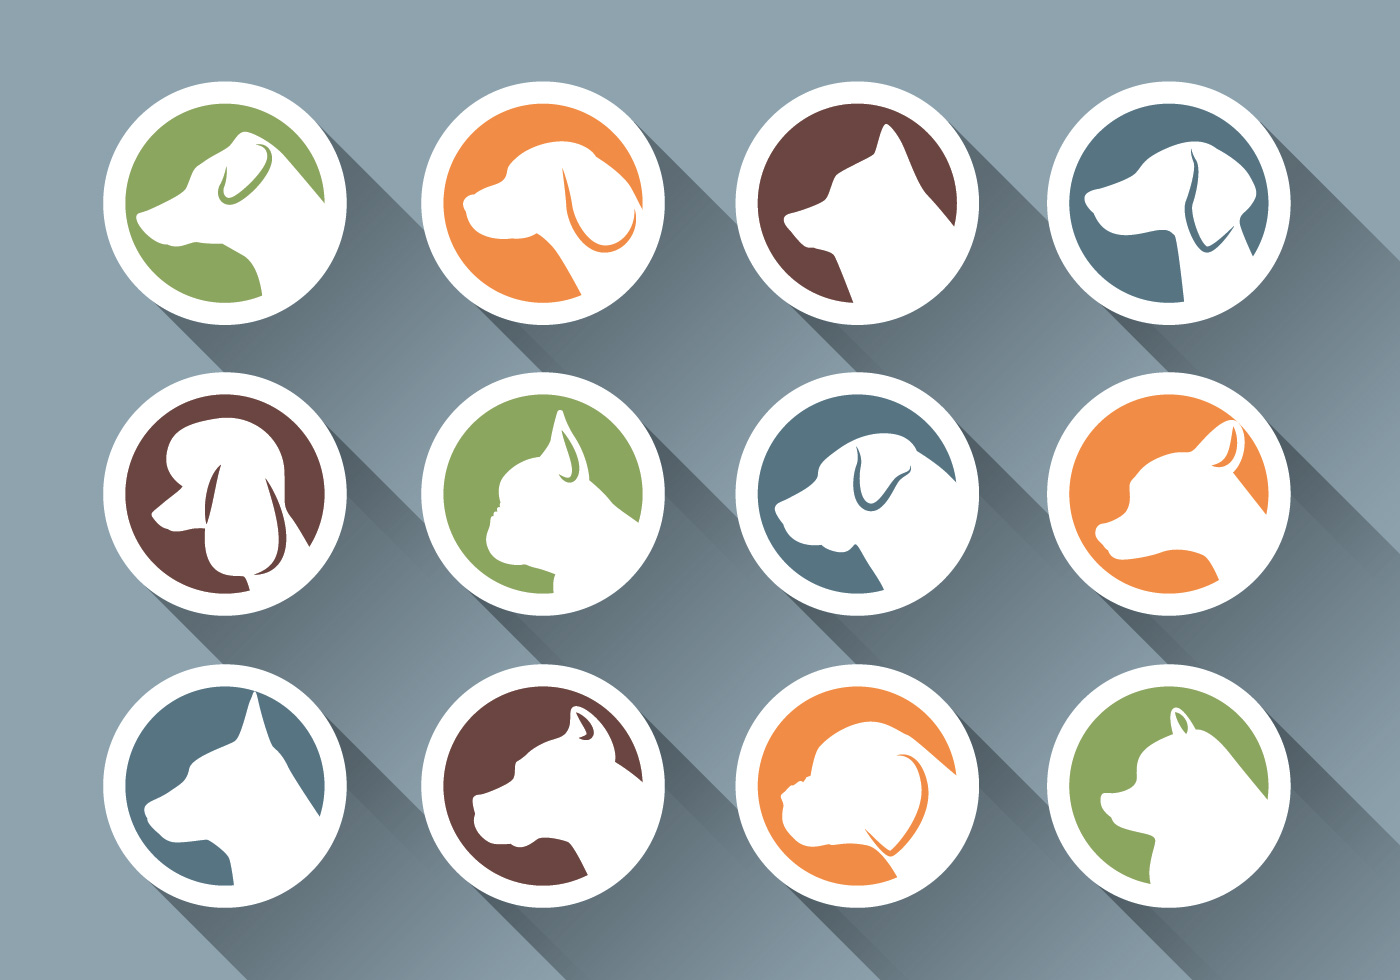 dog side face icon download free vector art stock